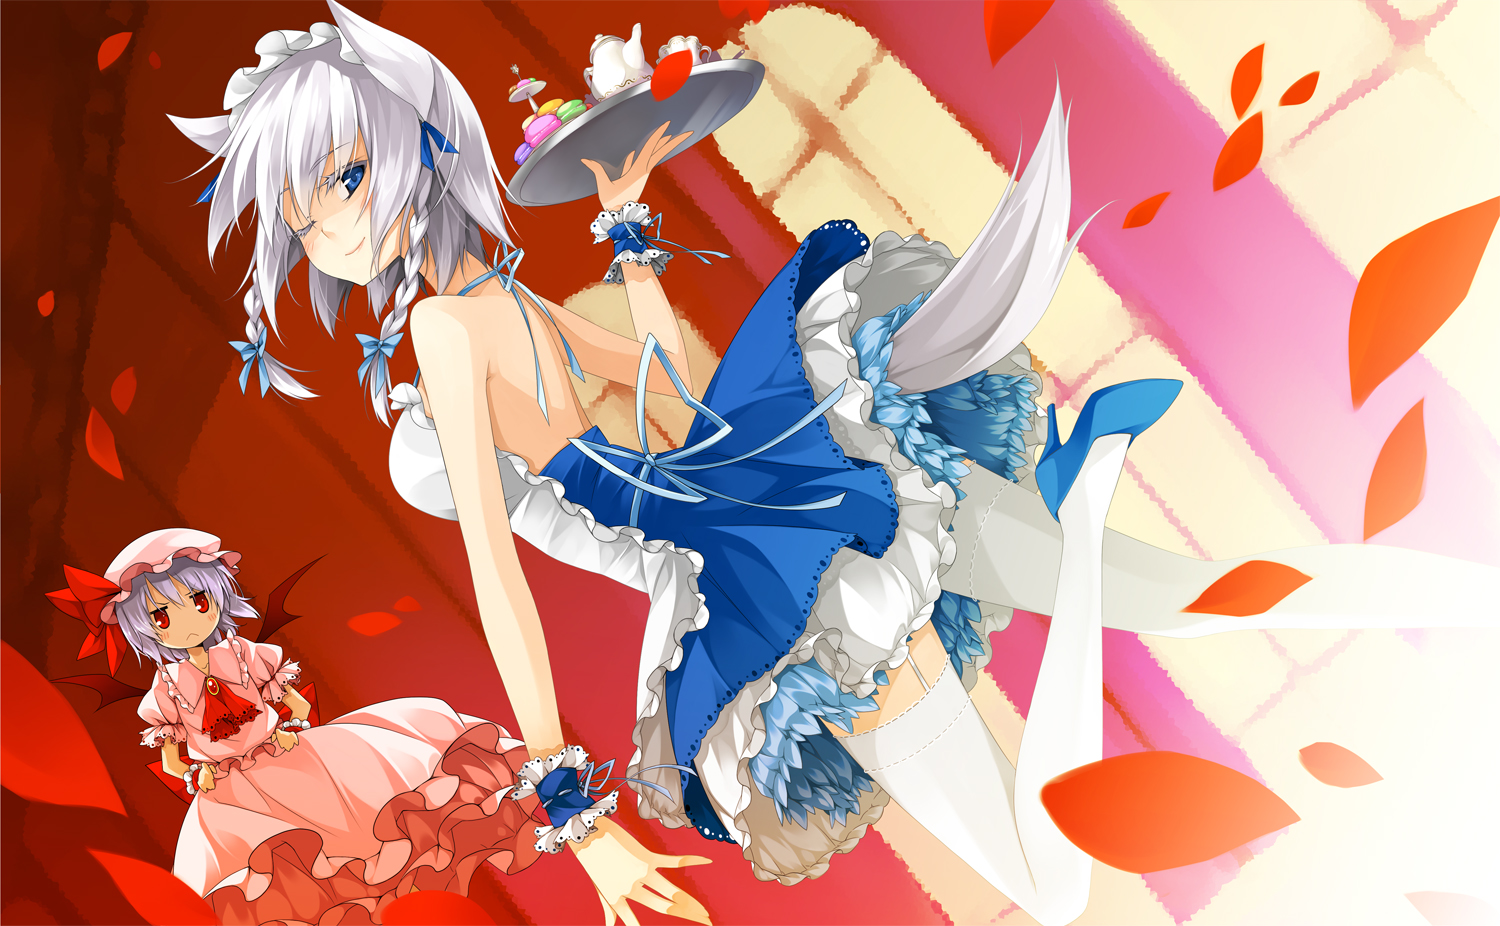 dress foxgirl izayoi_sakuya maid petals red_eyes reina_(black_spider) remilia_scarlet tail thighhighs touhou vampire wings wink